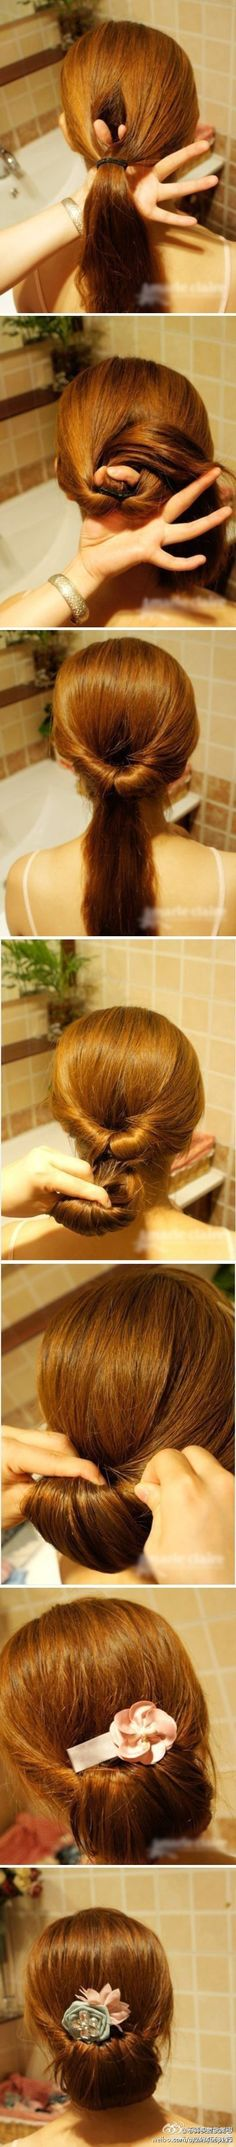 How to do a low bun up do.